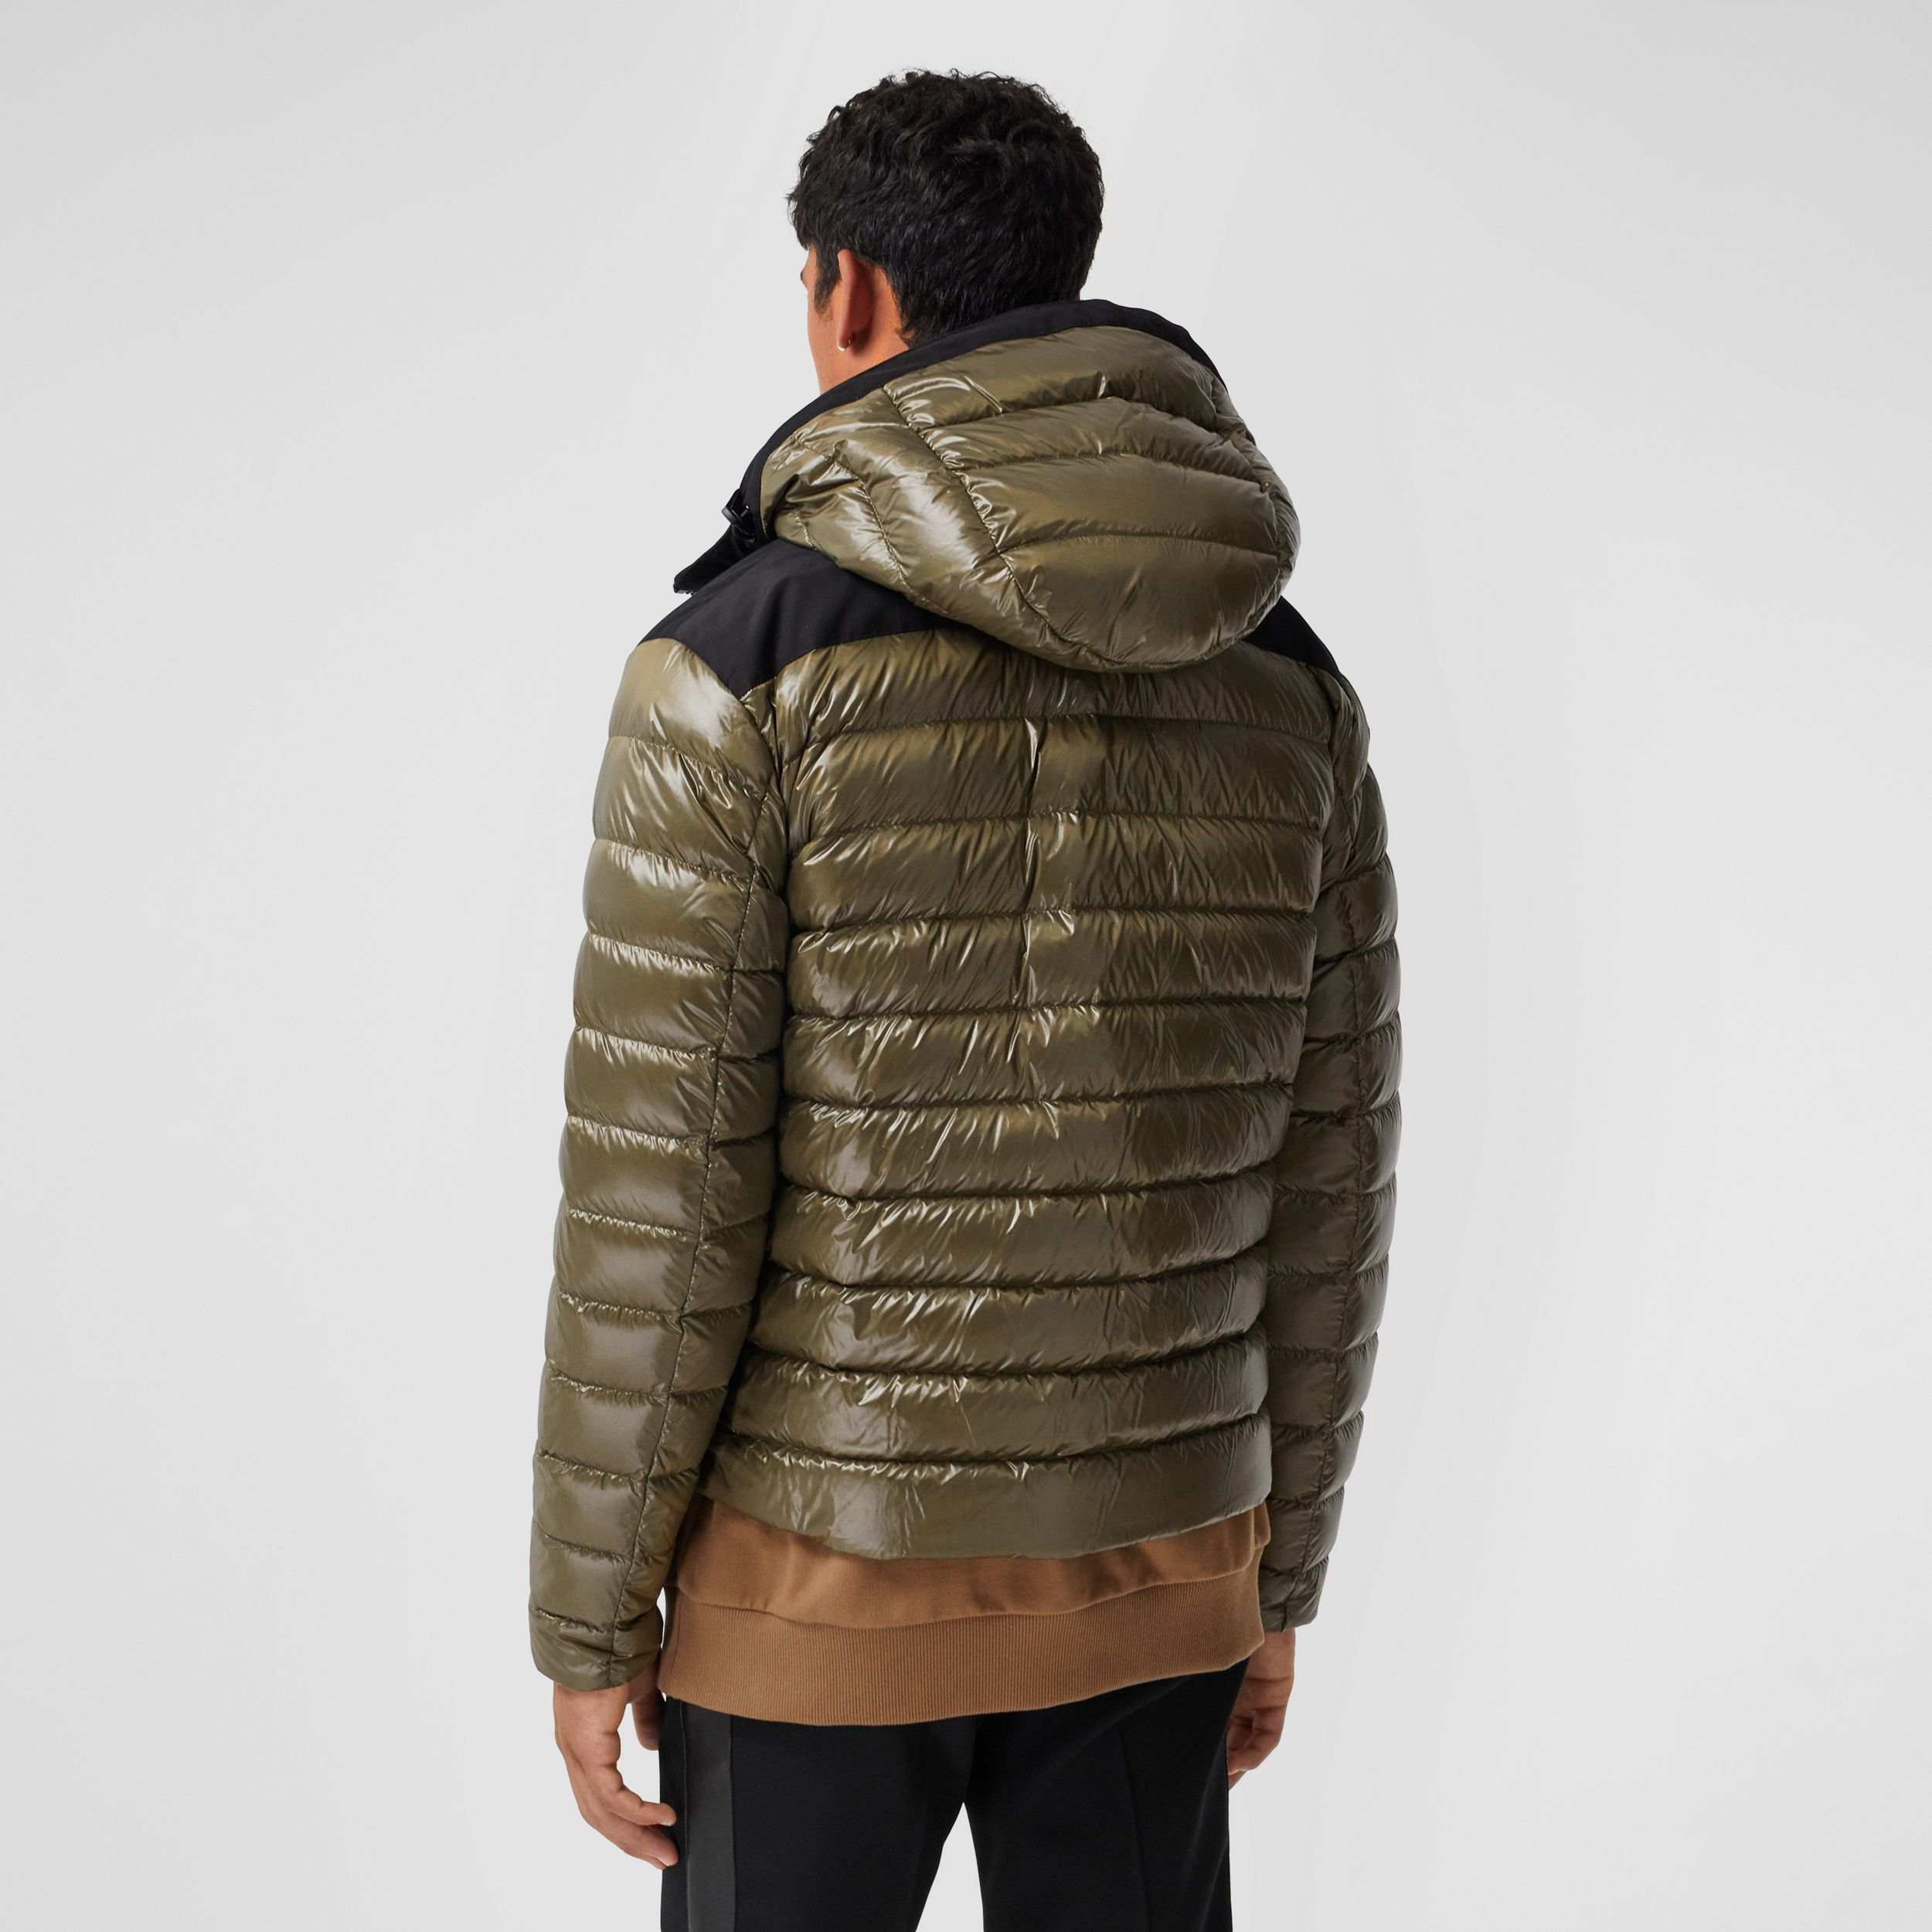 Location Print Hooded Puffer Jacket in Olive - Men | Burberry - 3